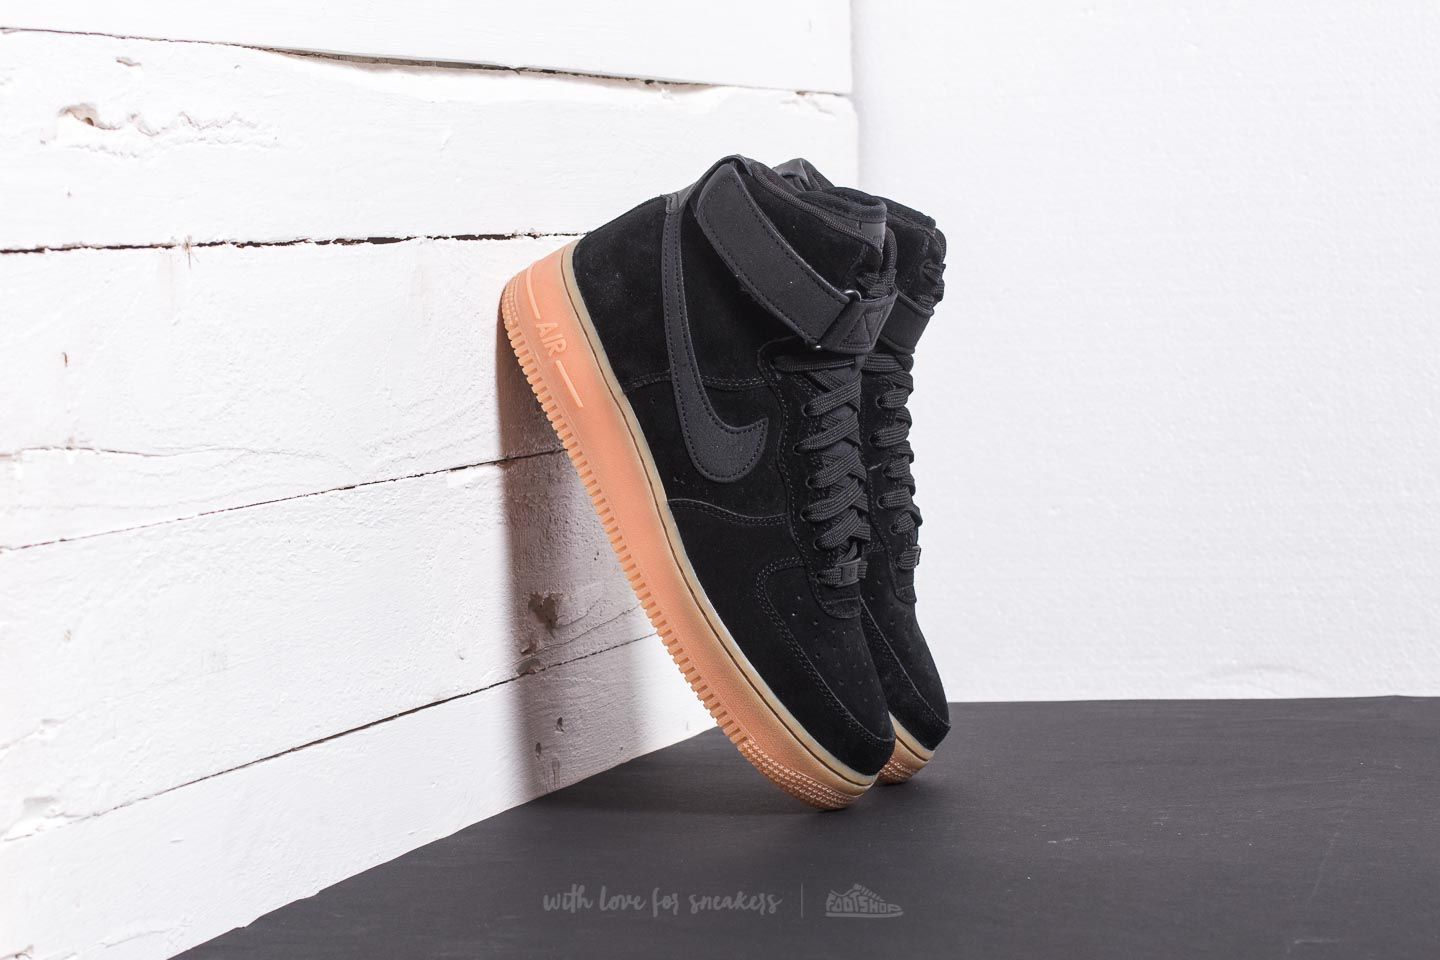 finest selection 48a6c 6fb49 Nike Air Force 1 High 07 LV8 Suede